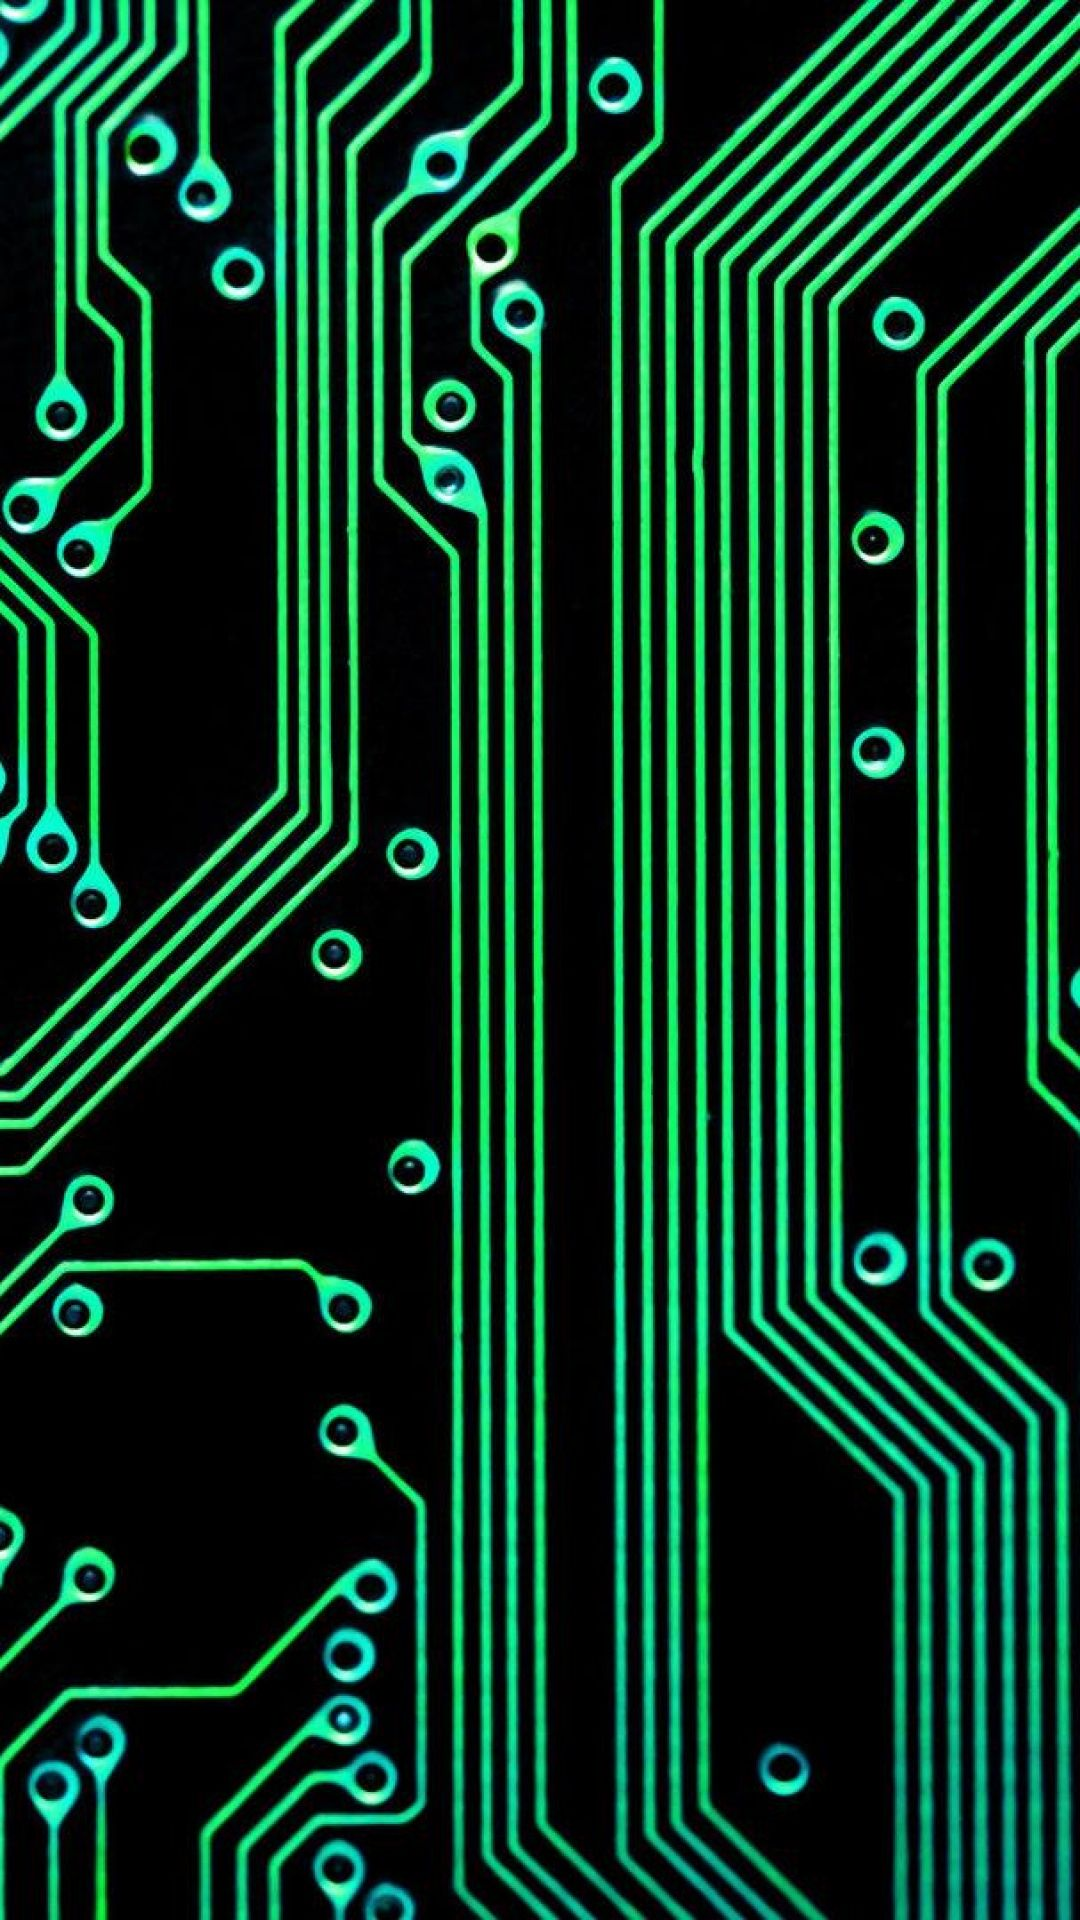 Tap And Get The Free App For Geeks Electronic Circuit Green Abstact Background With Board Binary Code Stock Images Black Technology Guys Hd Iphone 6 Plus Wallpaper